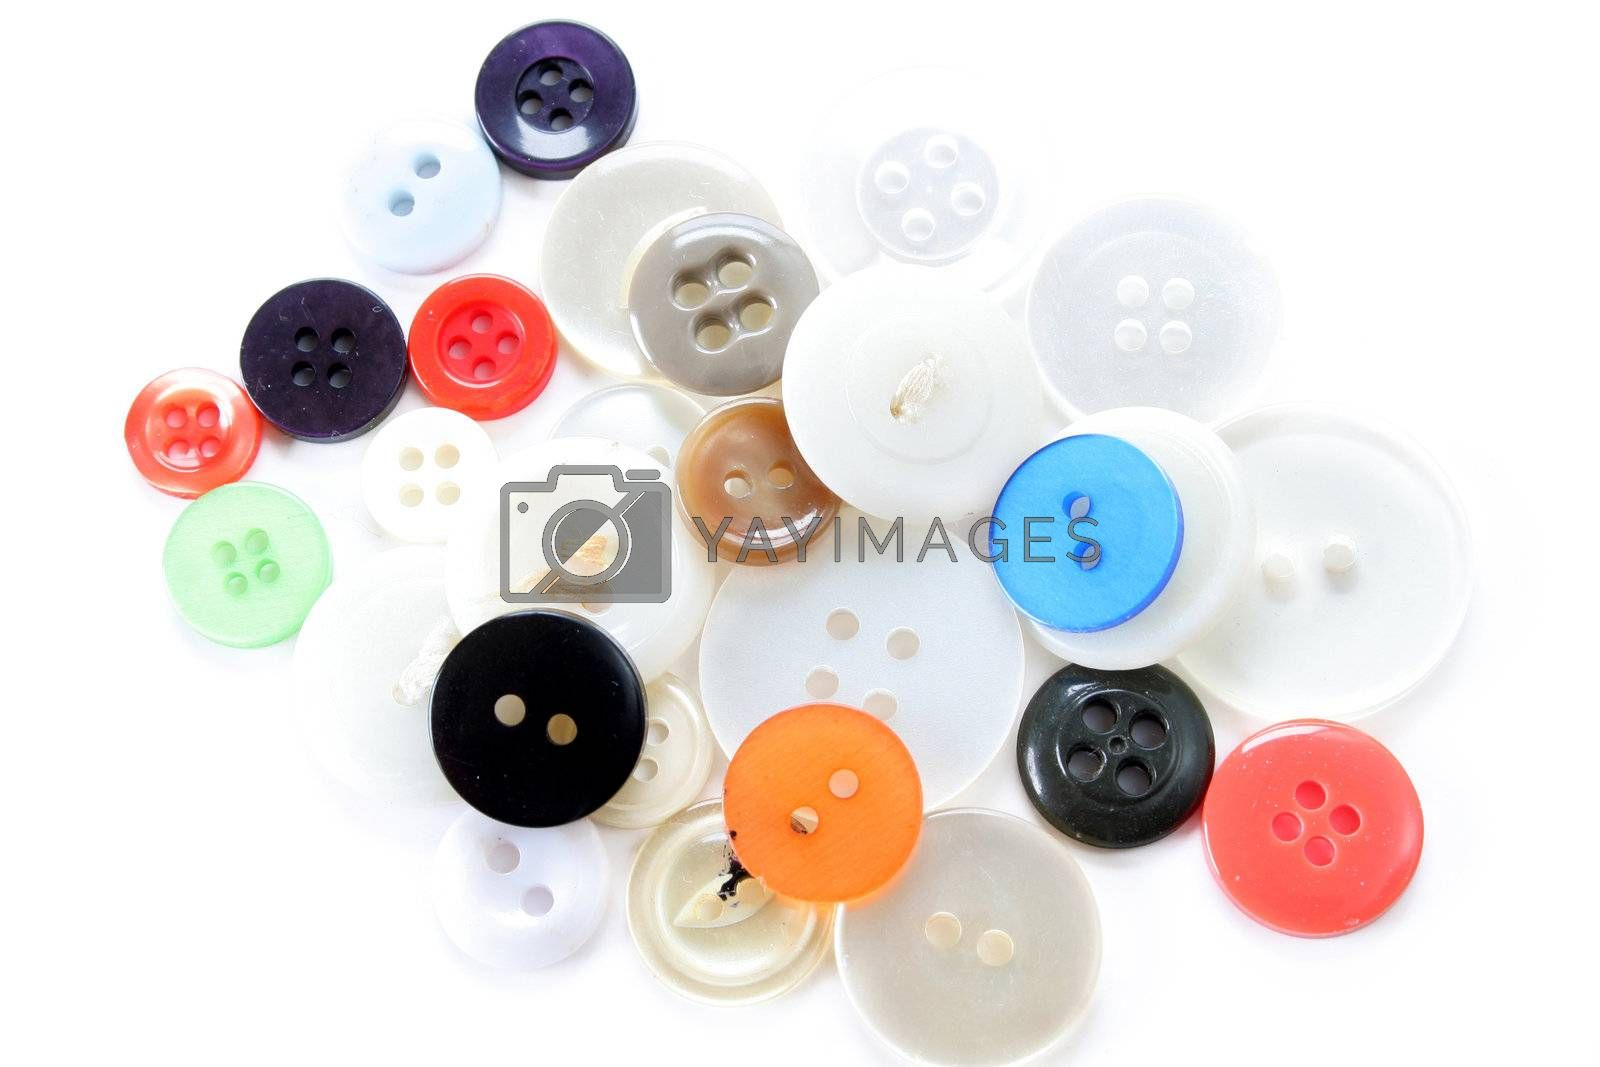 Mixture of buttons isolated on a white background.